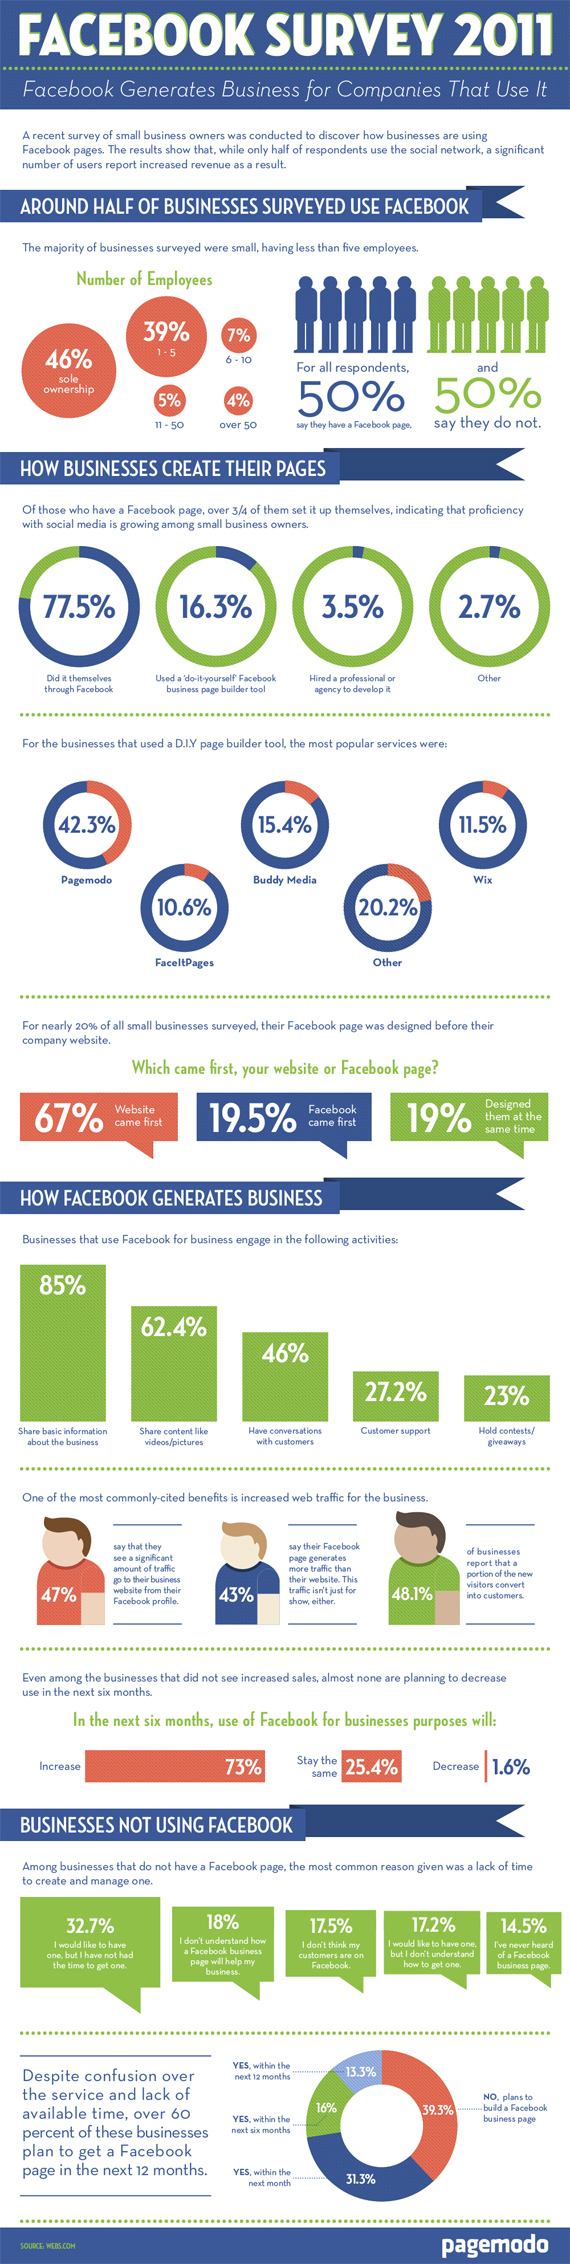 Facebook Survey Results Many small business owners still fail to understand Facebook Pages